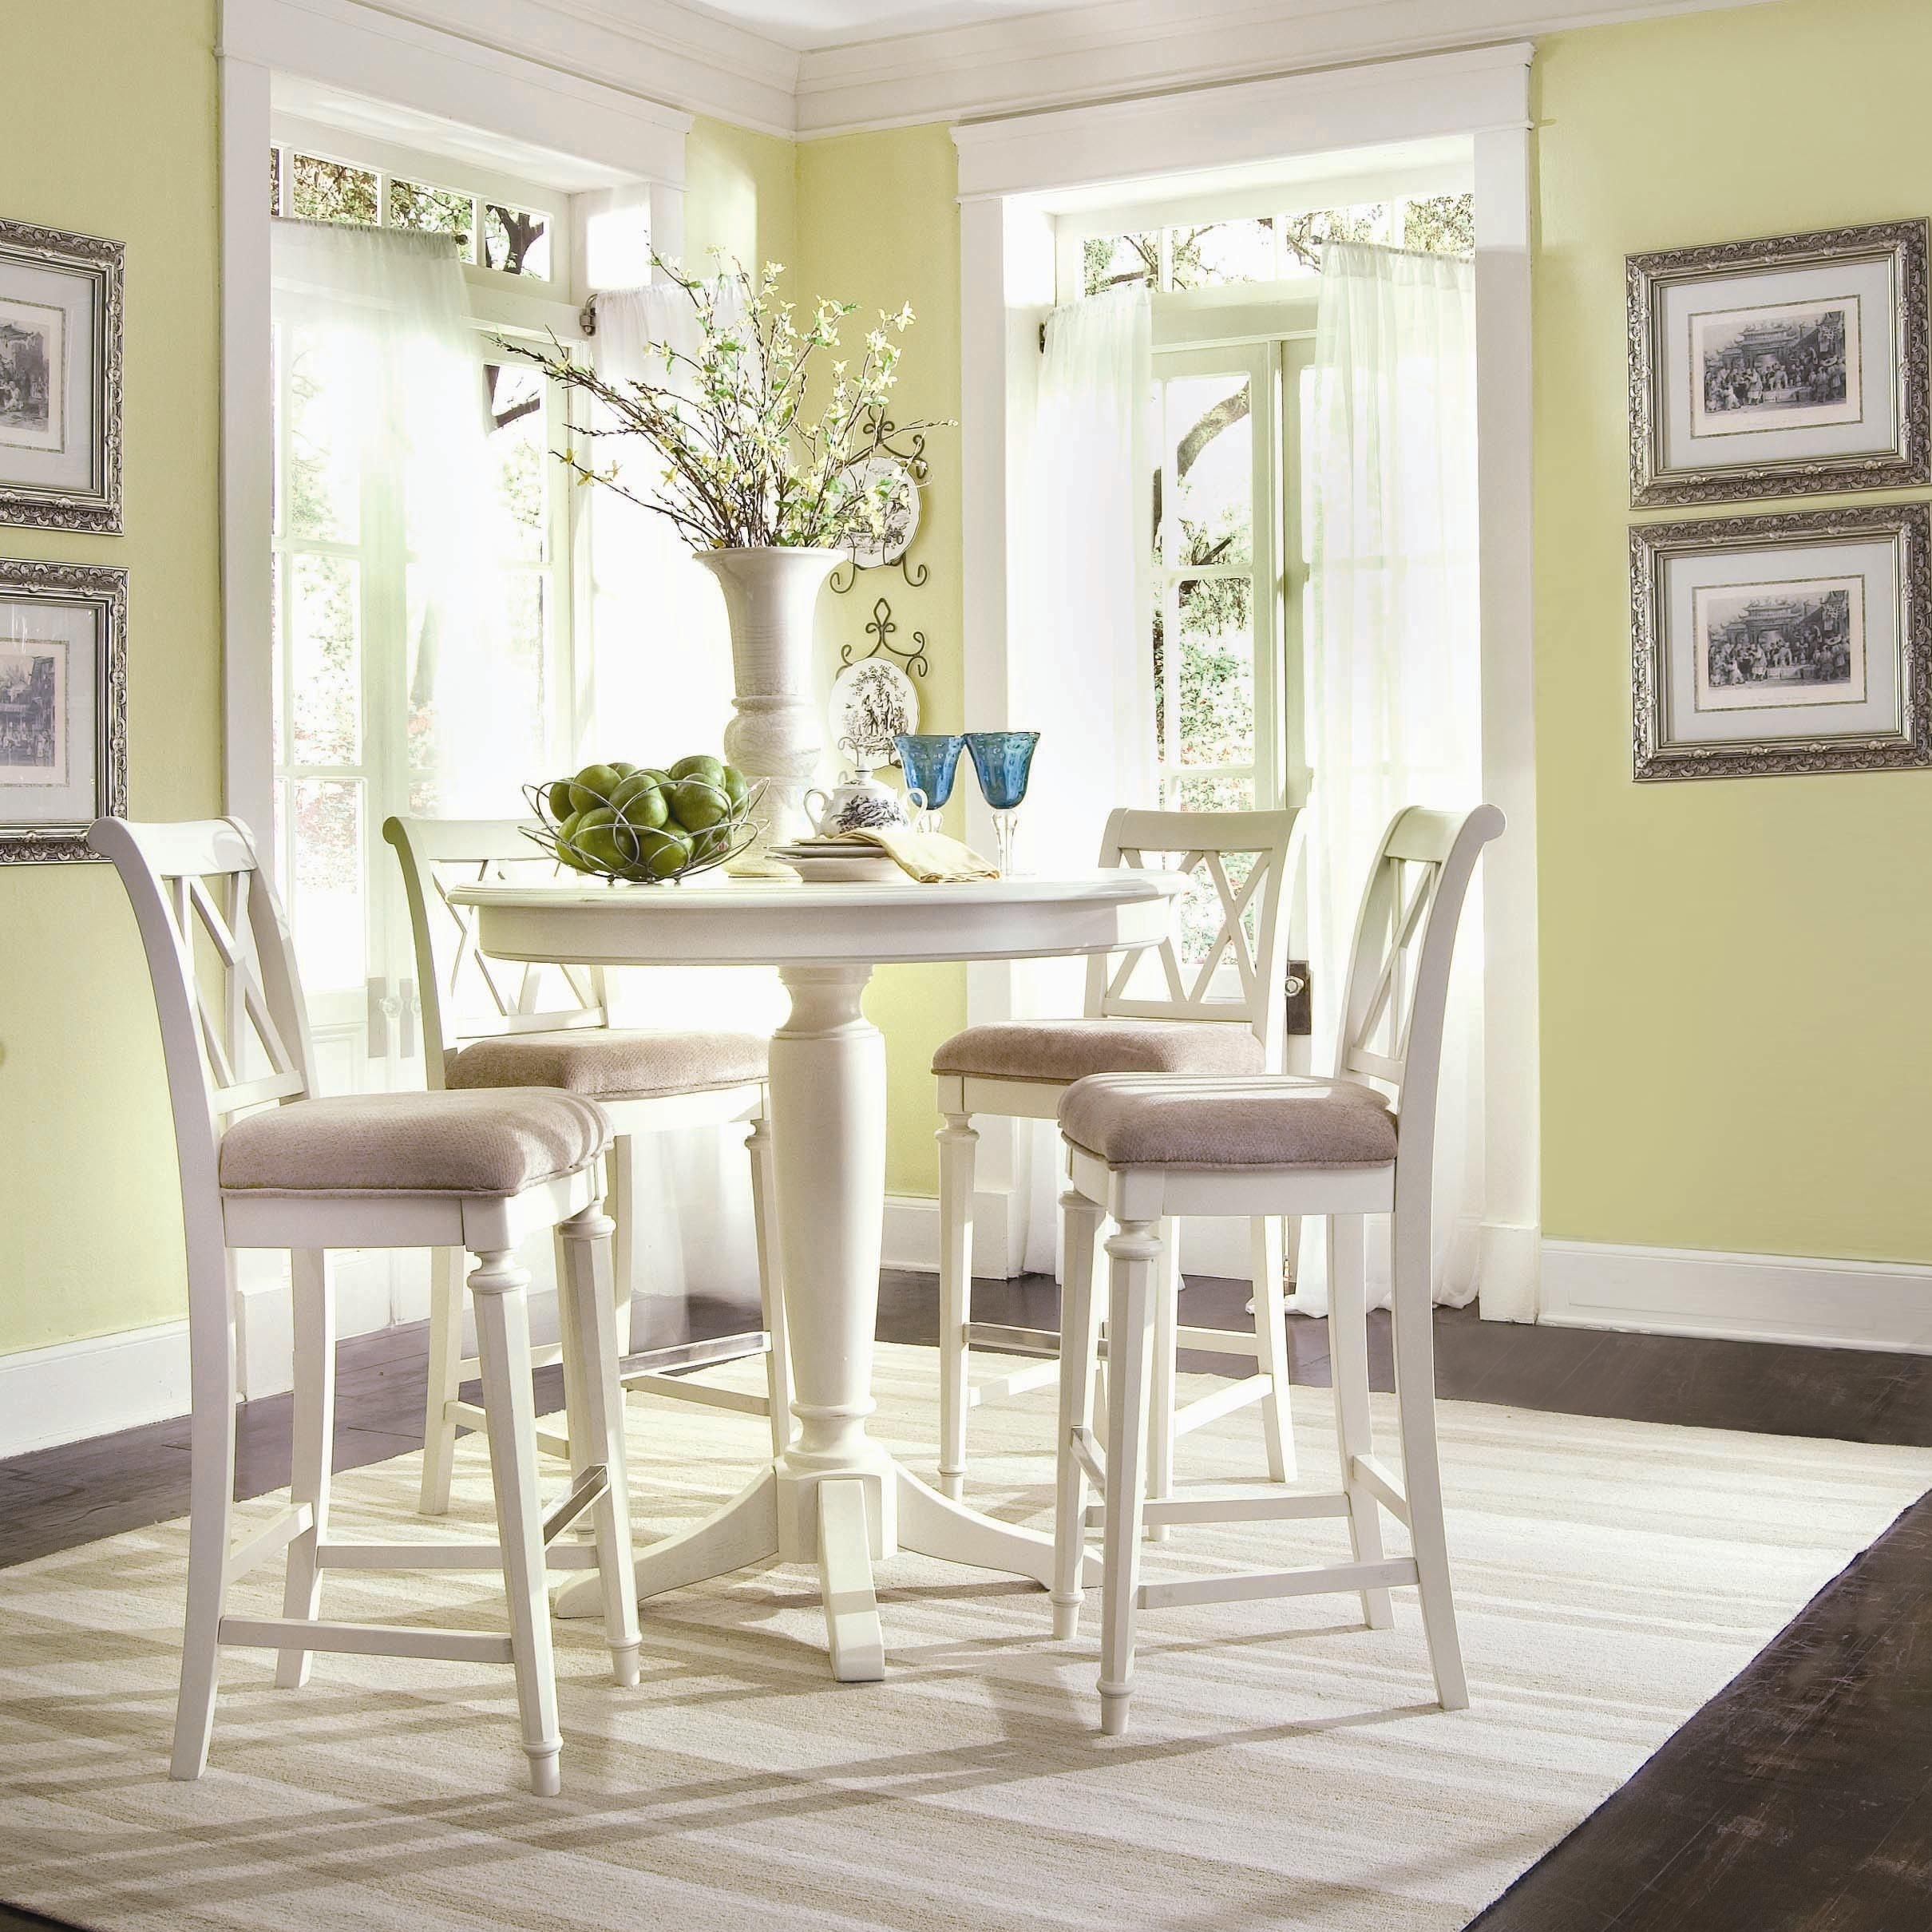 Create A Cottage Look With A Small Gathering Table! #cottage #life Intended For Most Up To Date Palazzo 7 Piece Dining Sets With Pearson Grey Side Chairs (View 11 of 20)